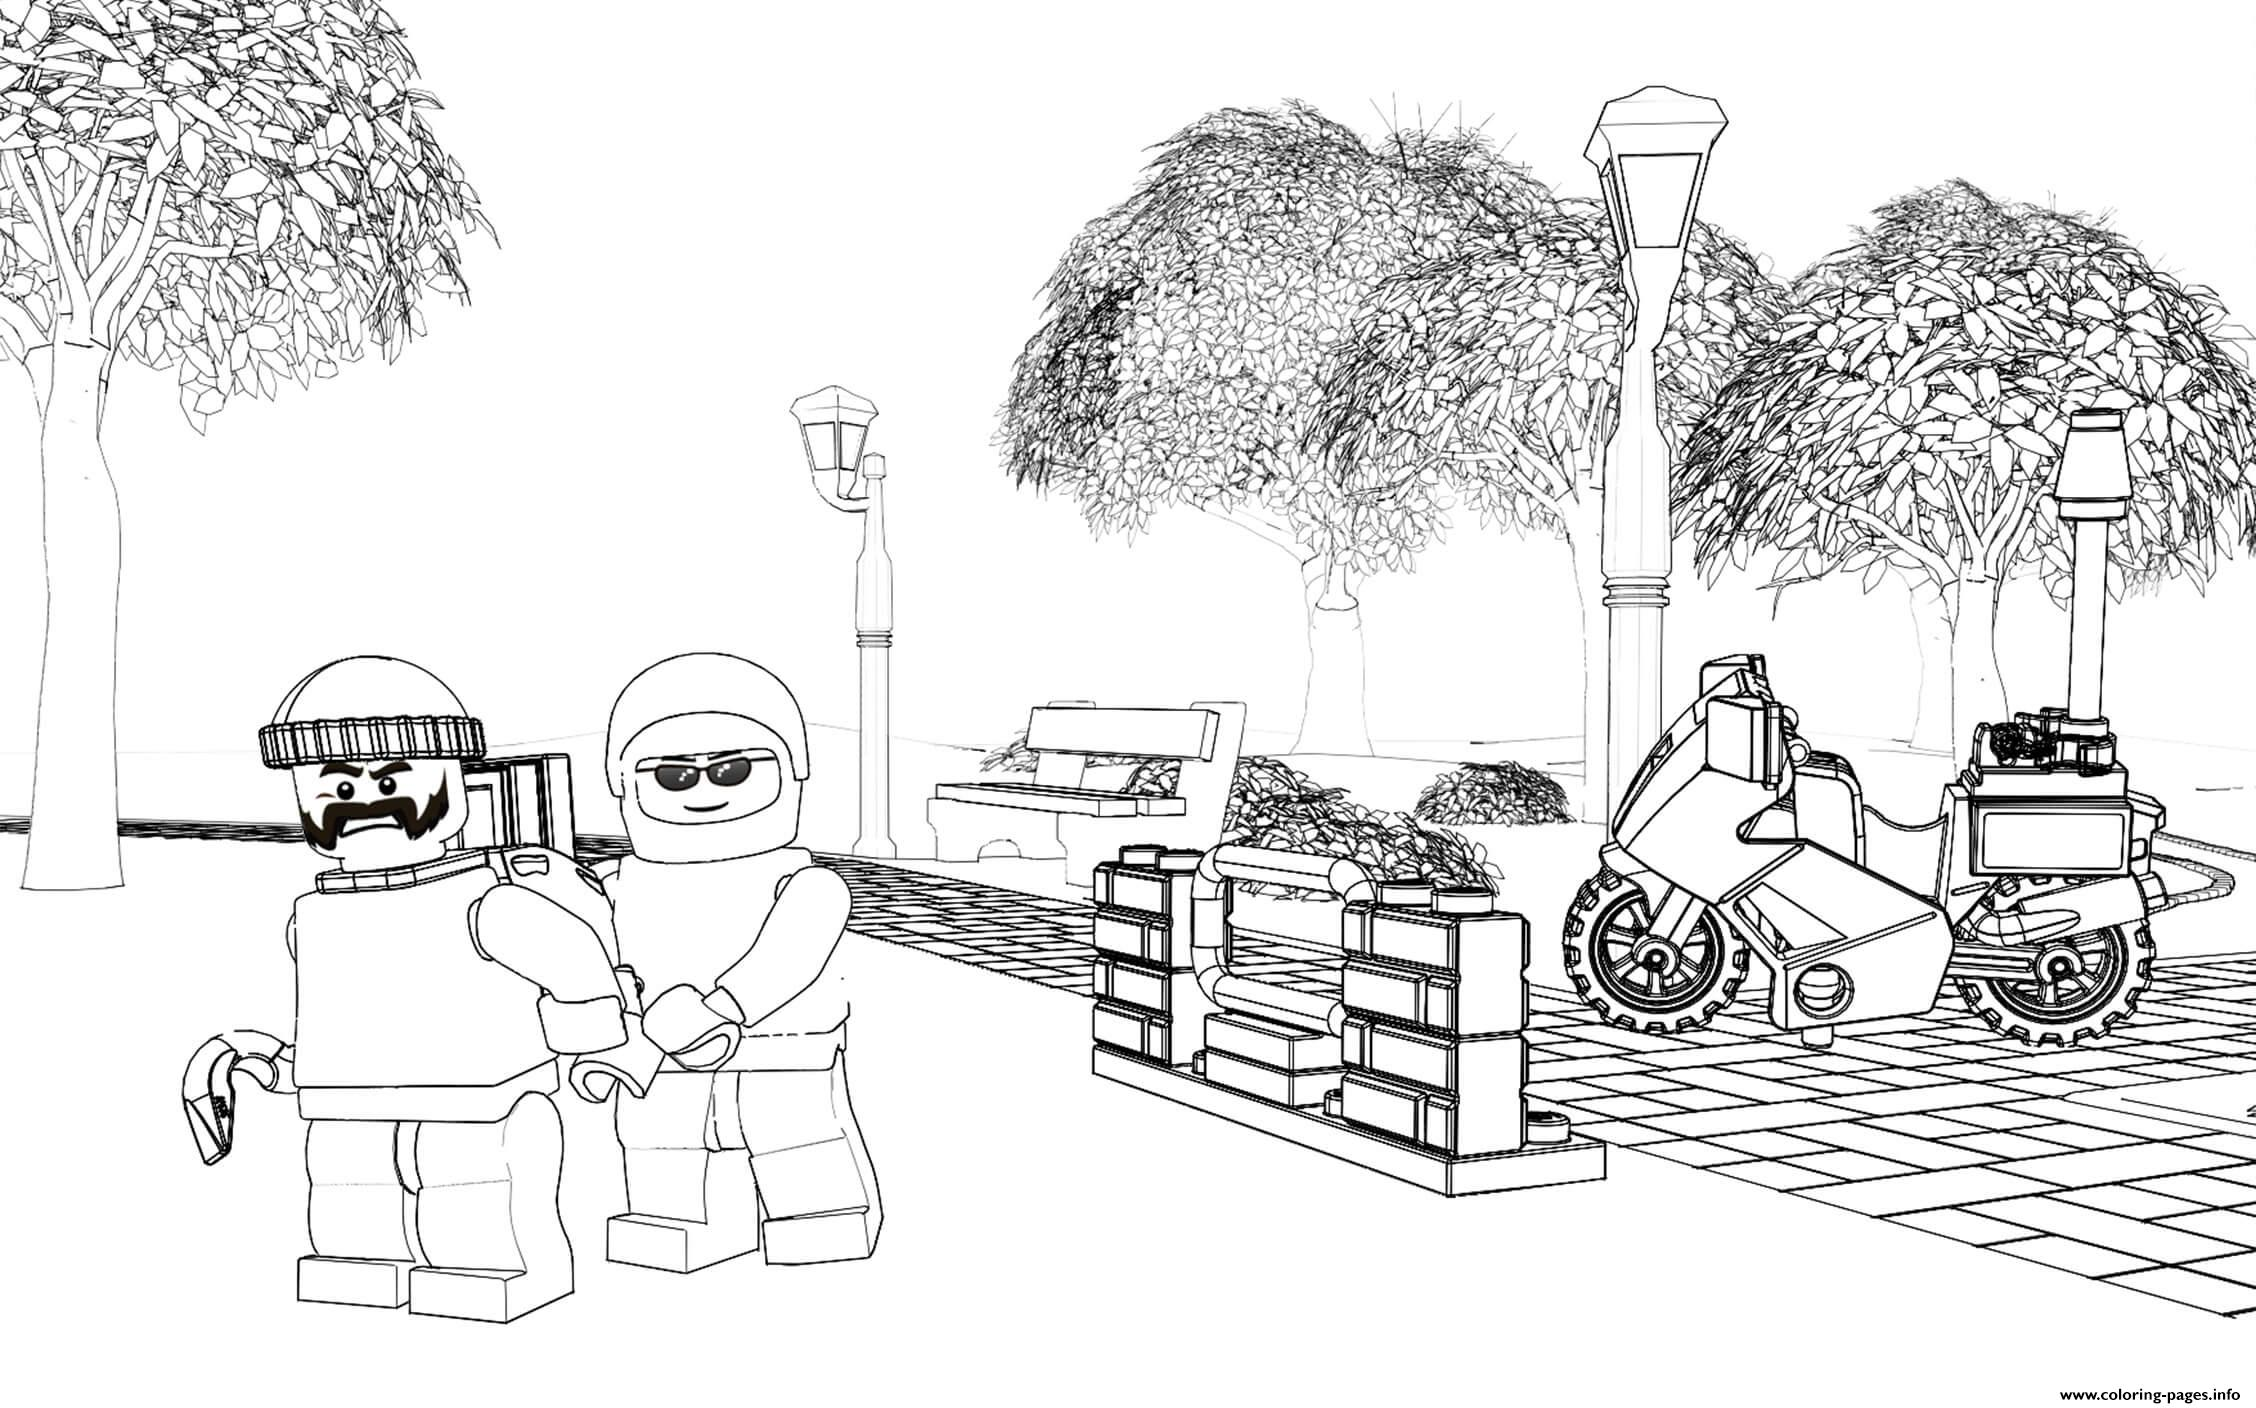 Lego Police Crook Pursuit coloring pages